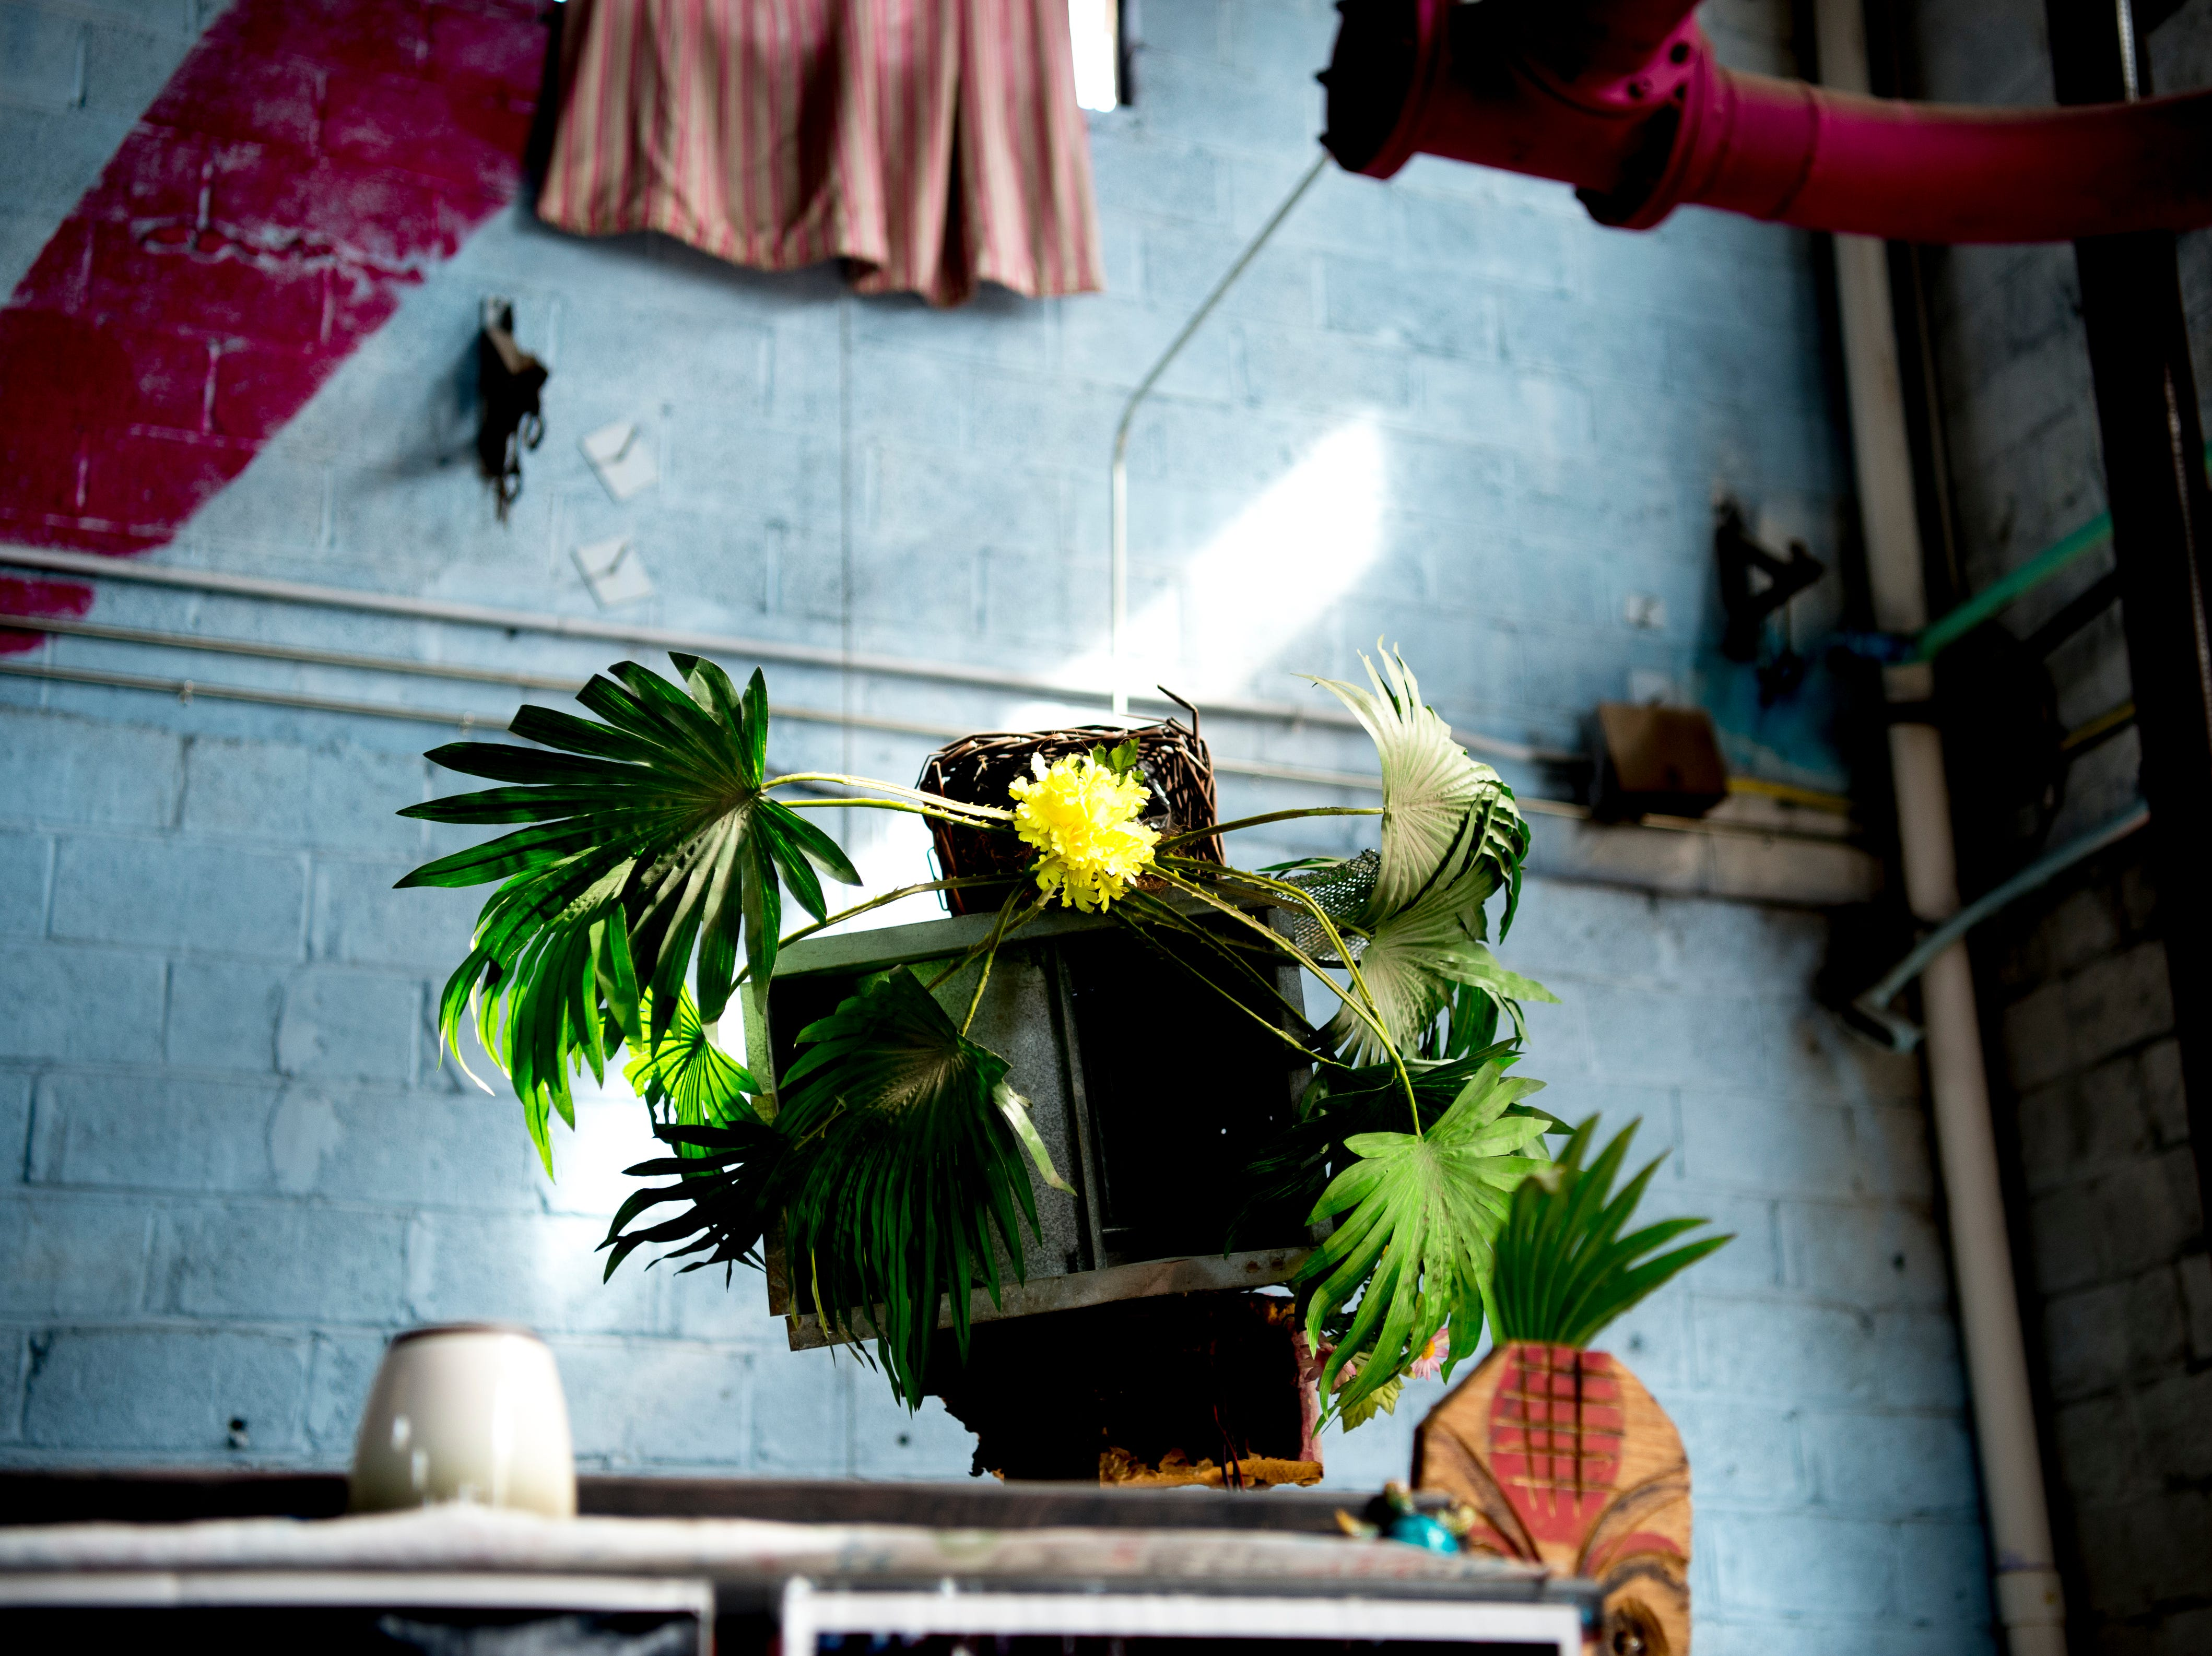 A potted plant decoration near the bar at Bar Marley in Knoxville, Tennessee on Thursday, February 14, 2019. The Caribbean-themed Bar Marley is facing possible acquisition and condemnation by KCDC due to code violations.